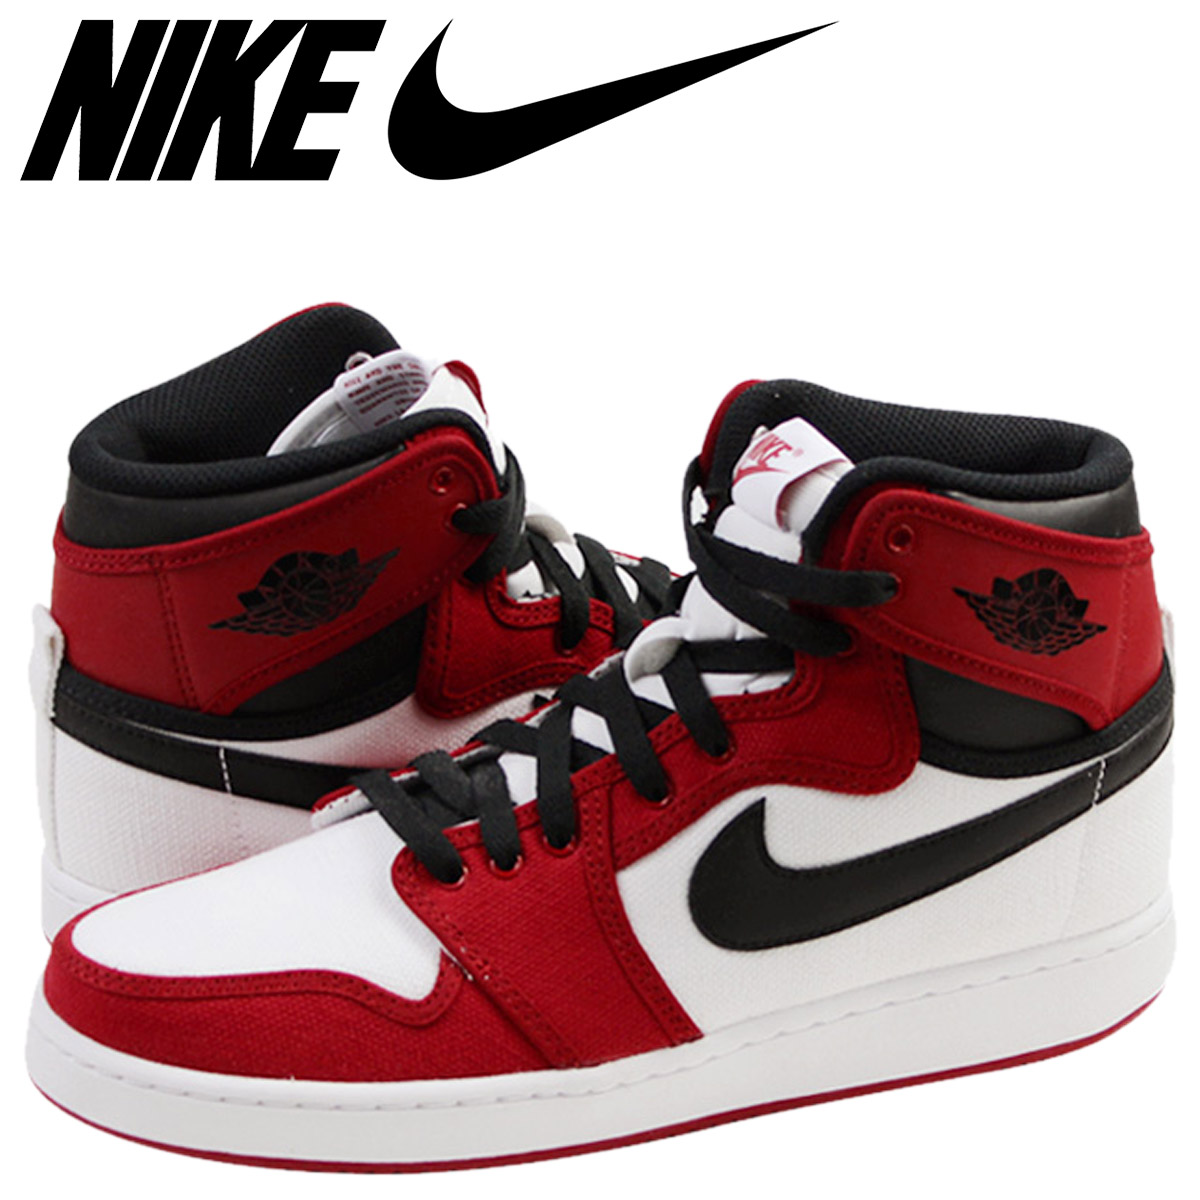 Canvas Chicago 638471 Ko 14 Redd3 High Retro 101 Knocked Jim In Air Men's Out New Jordan Nike 1 UVGMzqpS